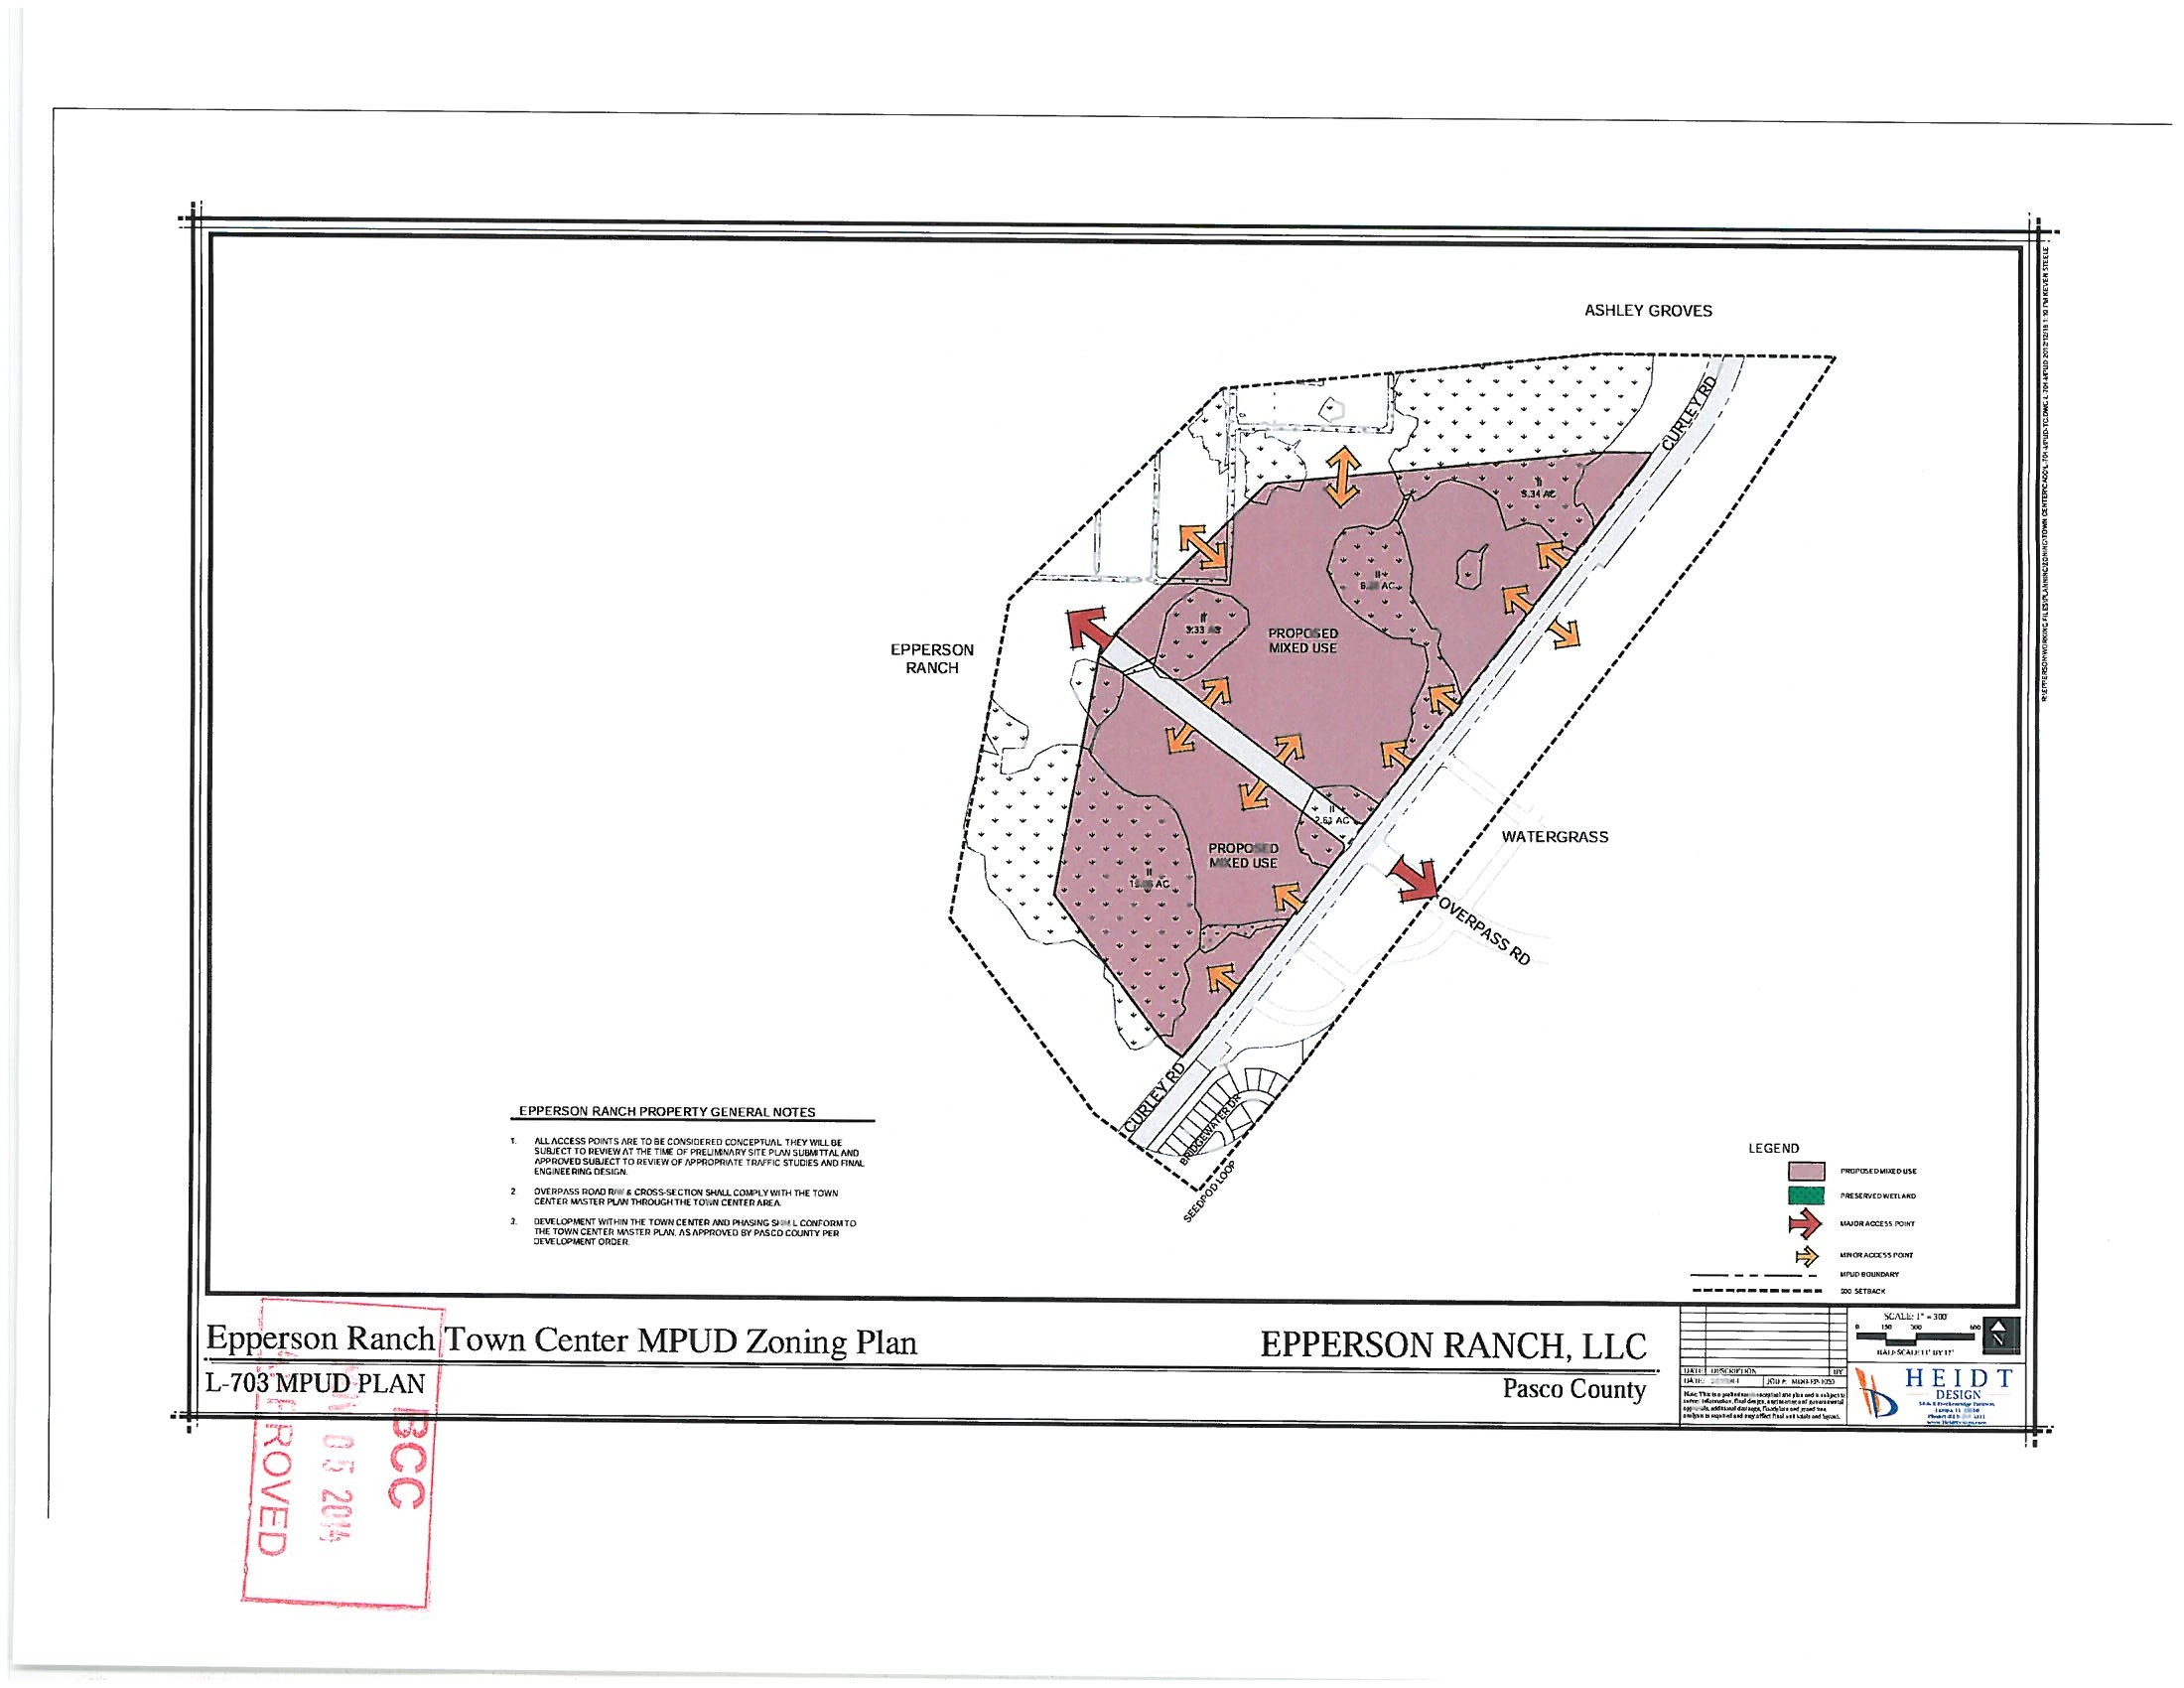 Epperson Ranch Town Center MPUD Plan